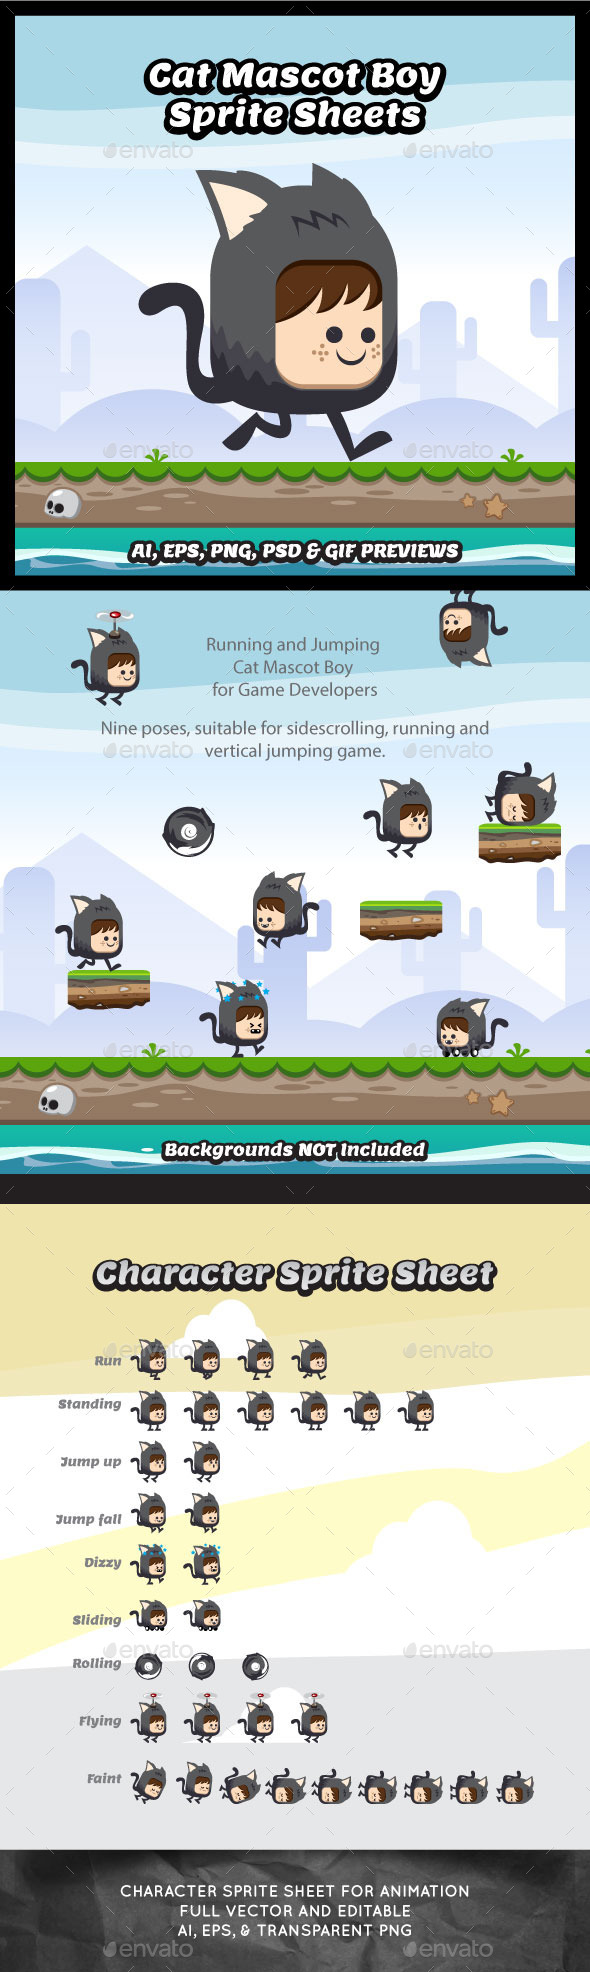 Cat Mascot Boy Game Character Sprite Sheets - Sprites Game Assets